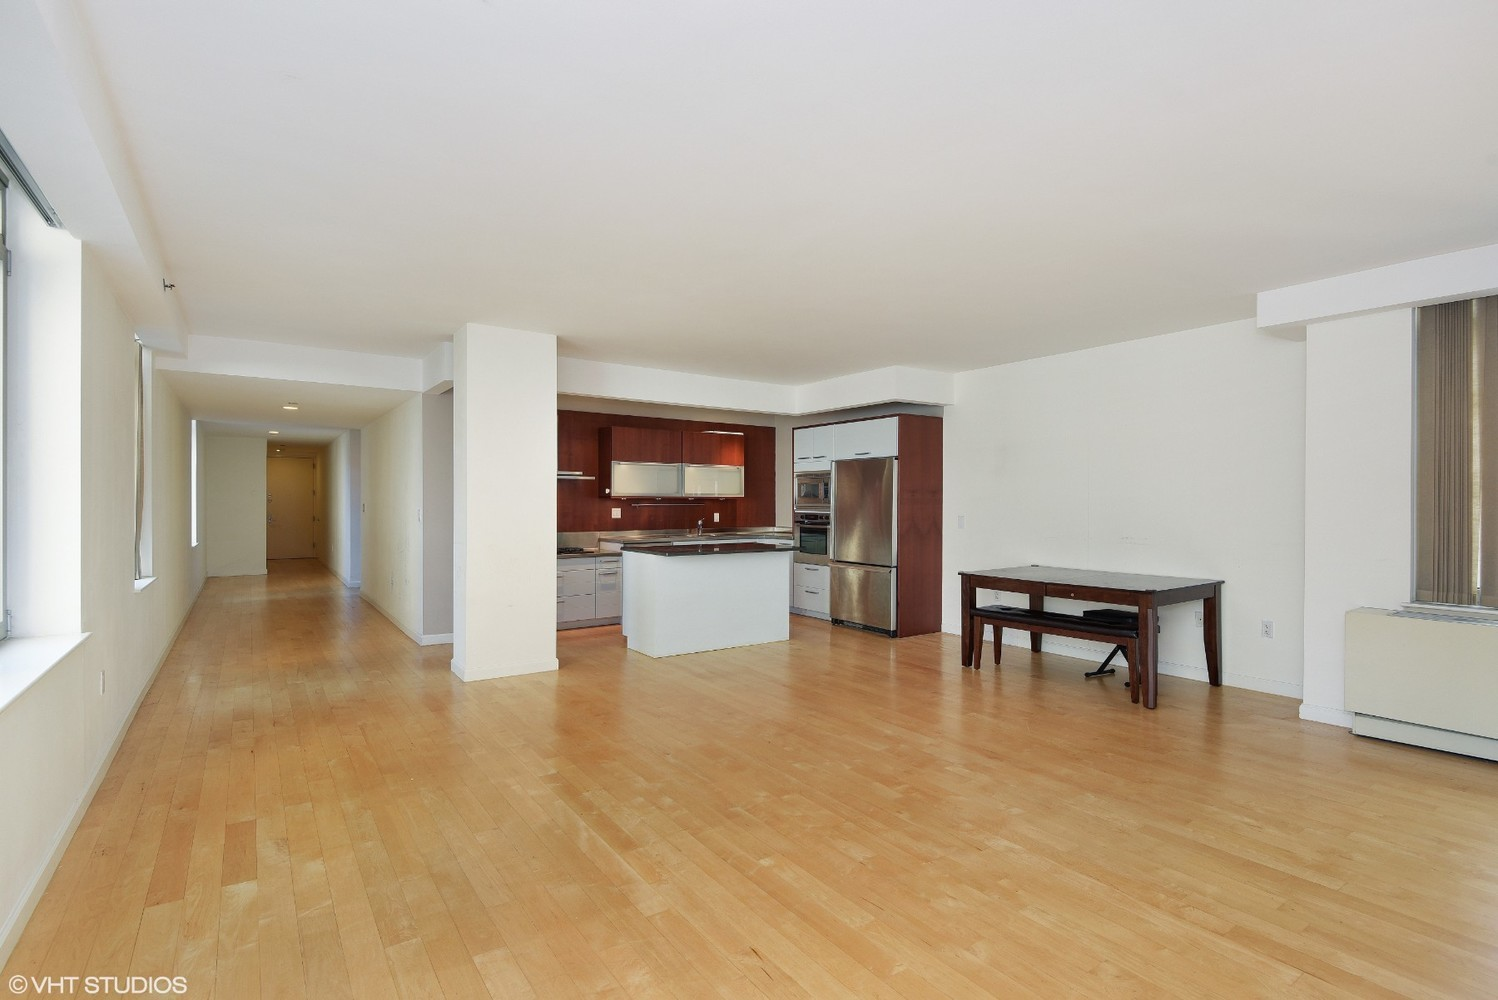 Rare offering of a 2,000+ sq ft sprawling 3 Bedroom / 2.5 Bath home with triple exposures in a prime location of Chelsea. Net rent advertised, landlord offering 1 month free on a 12-month lease. Gross rent is $10,900. This beautiful and tranquil apartment with maple wood flooring has an open kitchen with premium fixtures and appliances, wine fridge, and kitchen island. All the bedrooms are generously sized facing south and the marbled master bathroom contains double vanities, separate shower, and deep soaking tub. In addition, there is also a personal washer/dryer, 4 large closets, and 2 additional linen closets.The Campiello Collection is a boutique condominium with only 31 exclusive homes, full-time doorperson, fitness gym, courtyard, and roof deck. Pets allowed case by case.The Campiello Collection is a boutique condominium with only 31 exclusive homes, full-time doorperson, fitness gym, courtyard, and roof deck. Pets allowed case by case.Viewings by appointment only. State health guidelines will be followed.